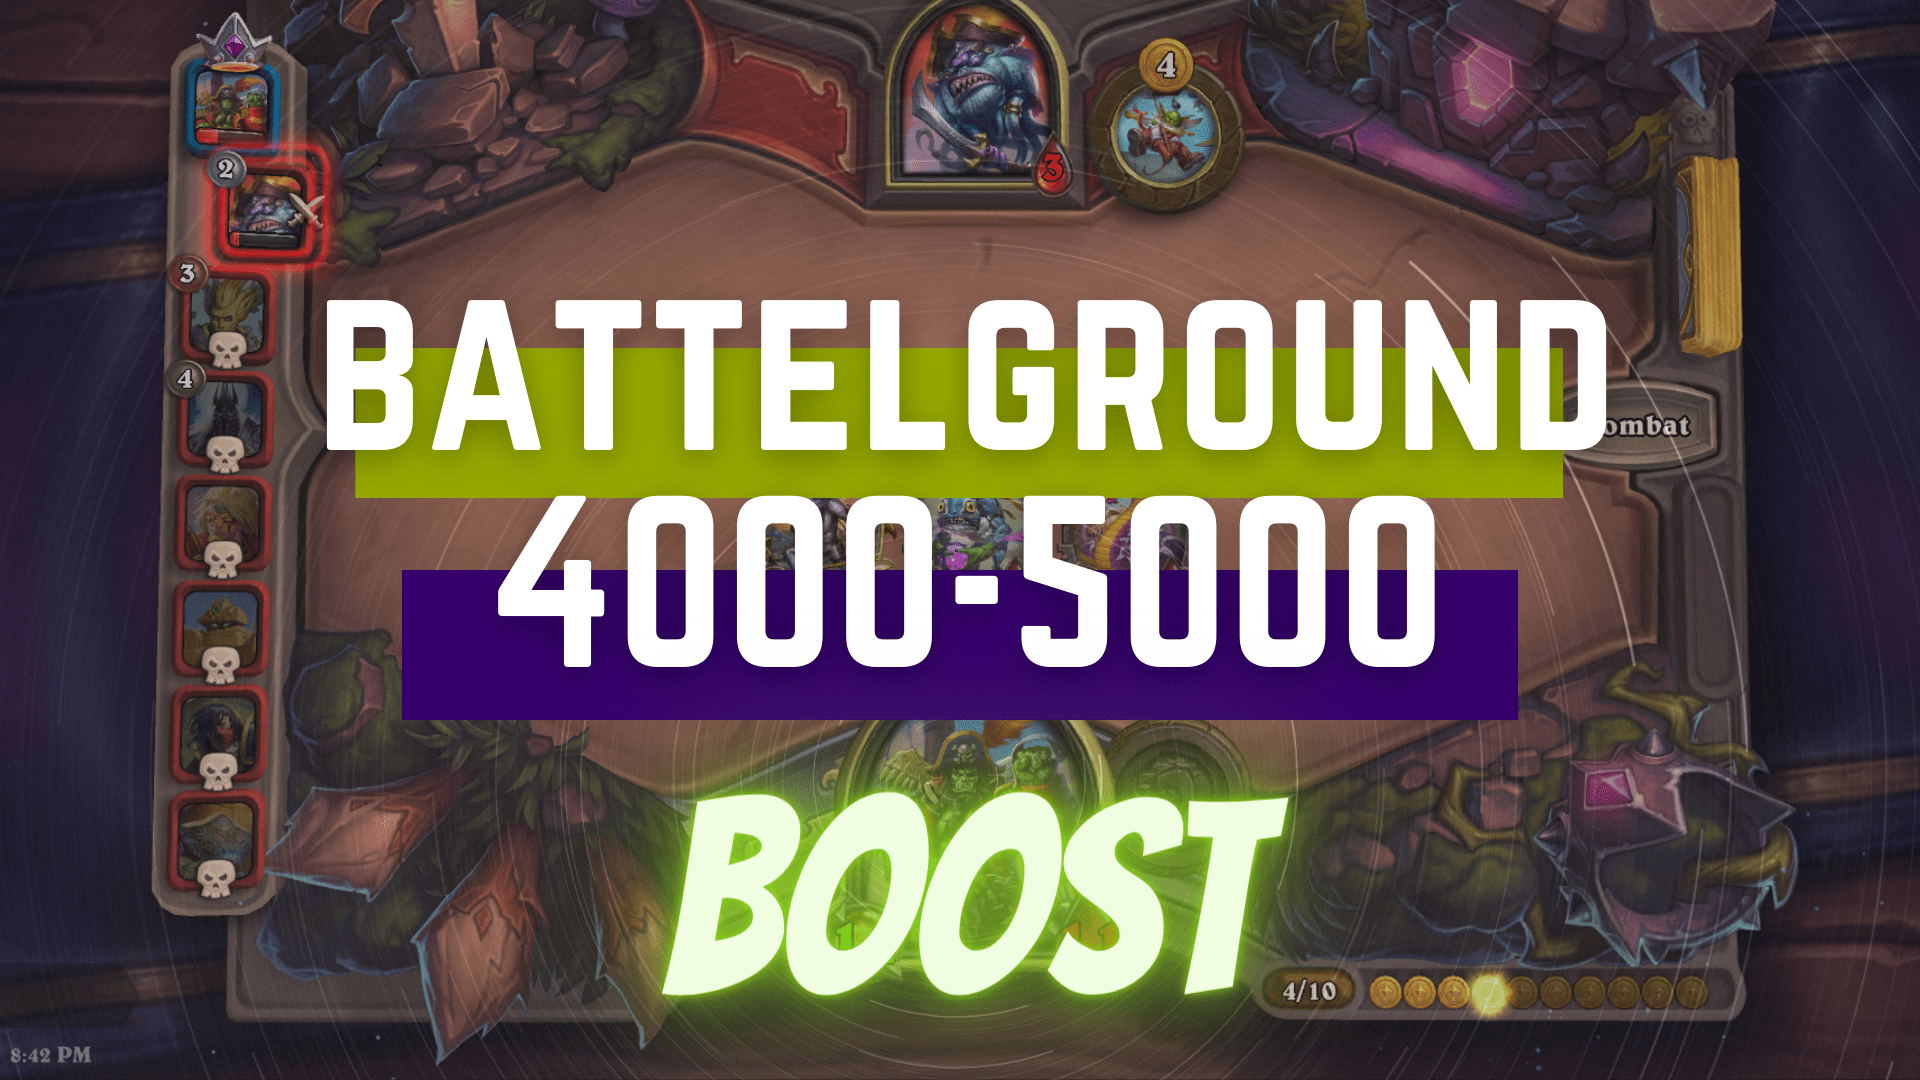 [Battlegrounds rating] Boost from 4000 to 5000 (price for +100) GBD - e2p.com